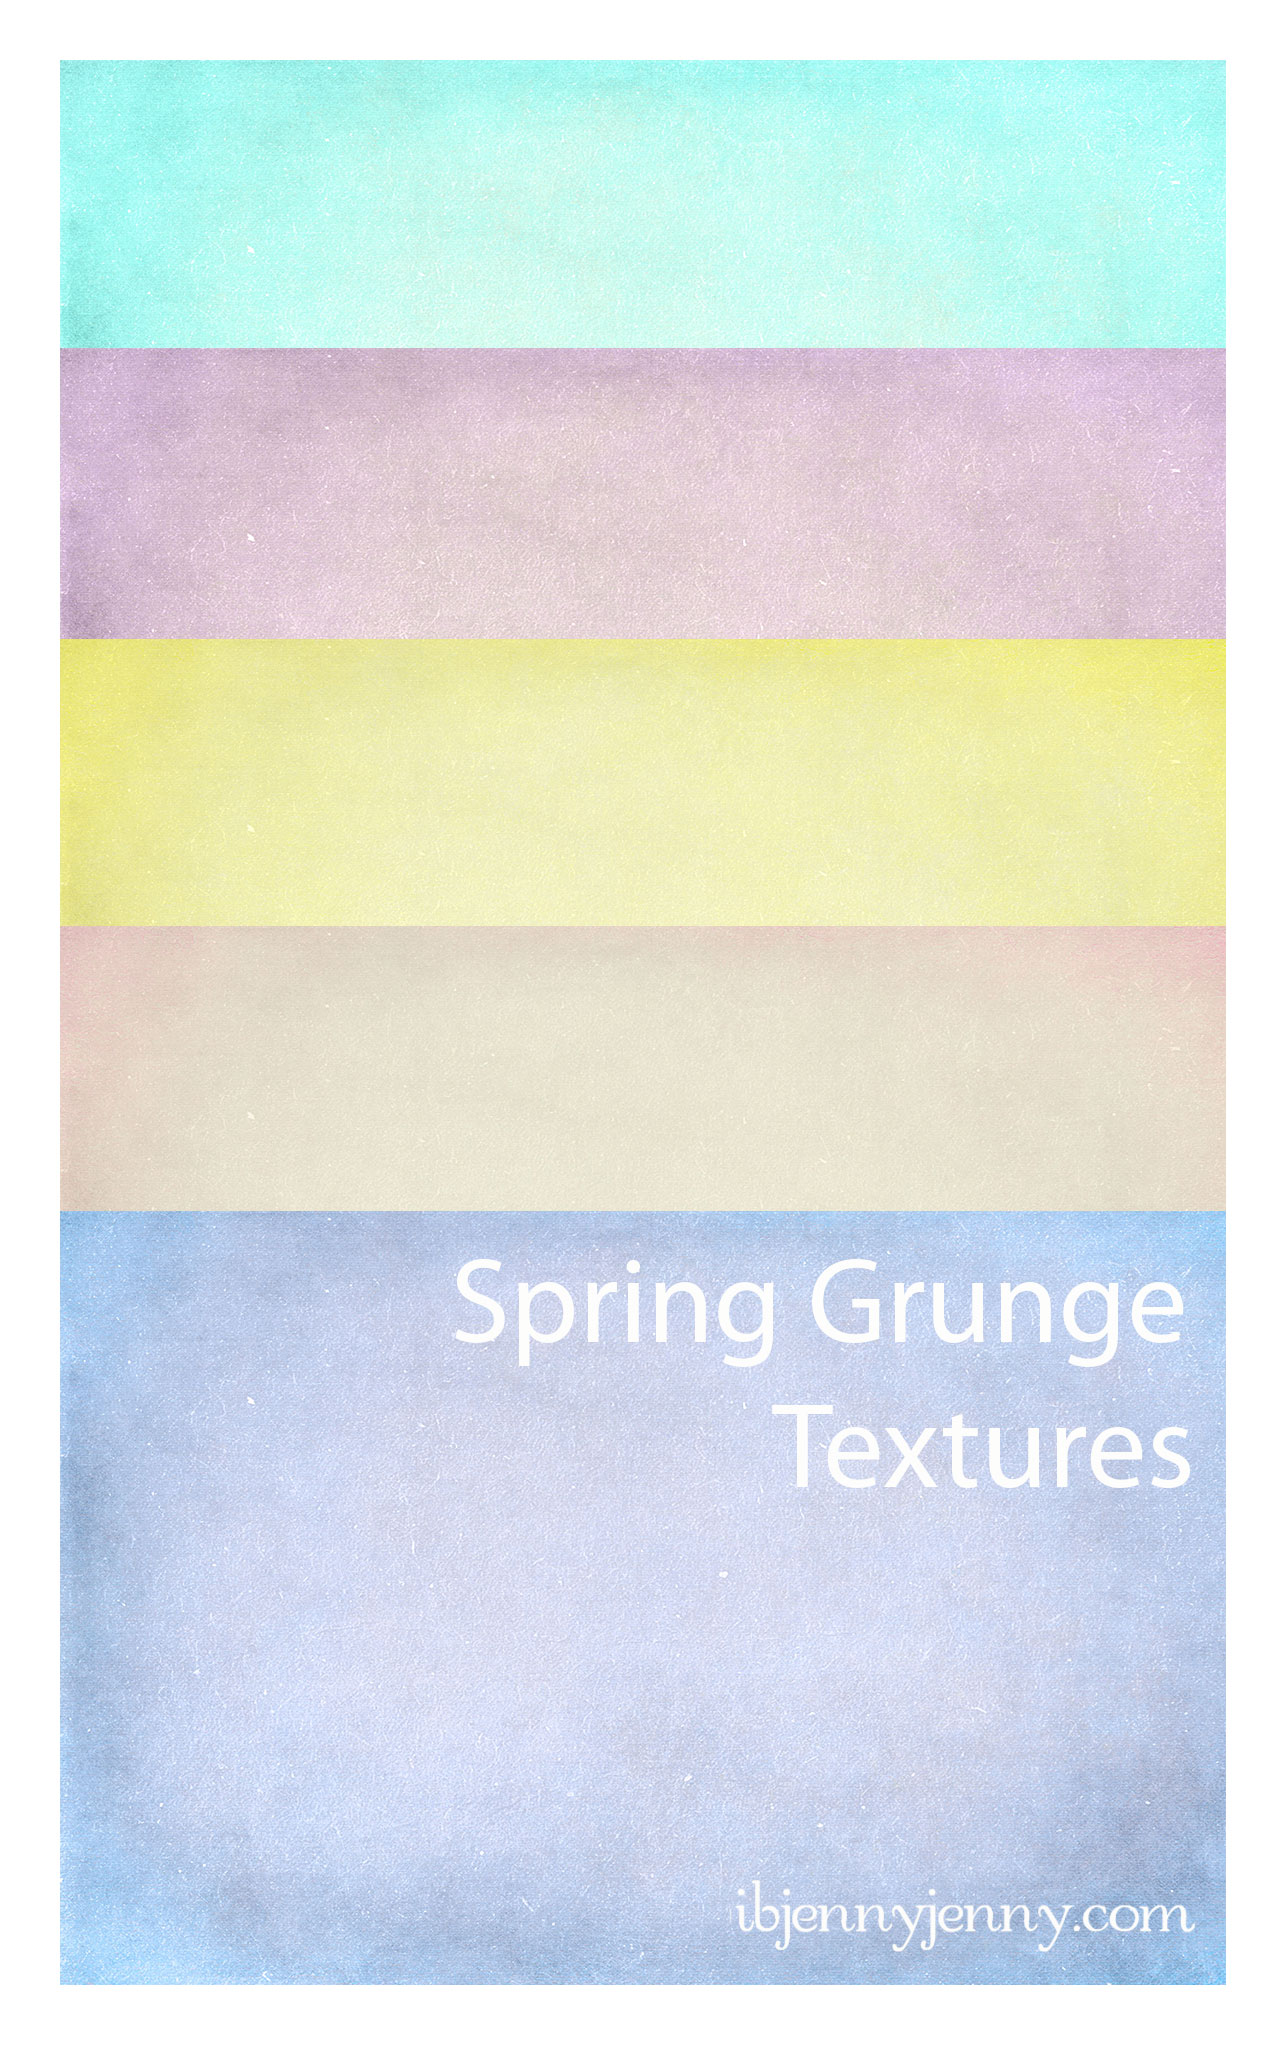 FREE Spring Grunge Textures by ibjennyjenny